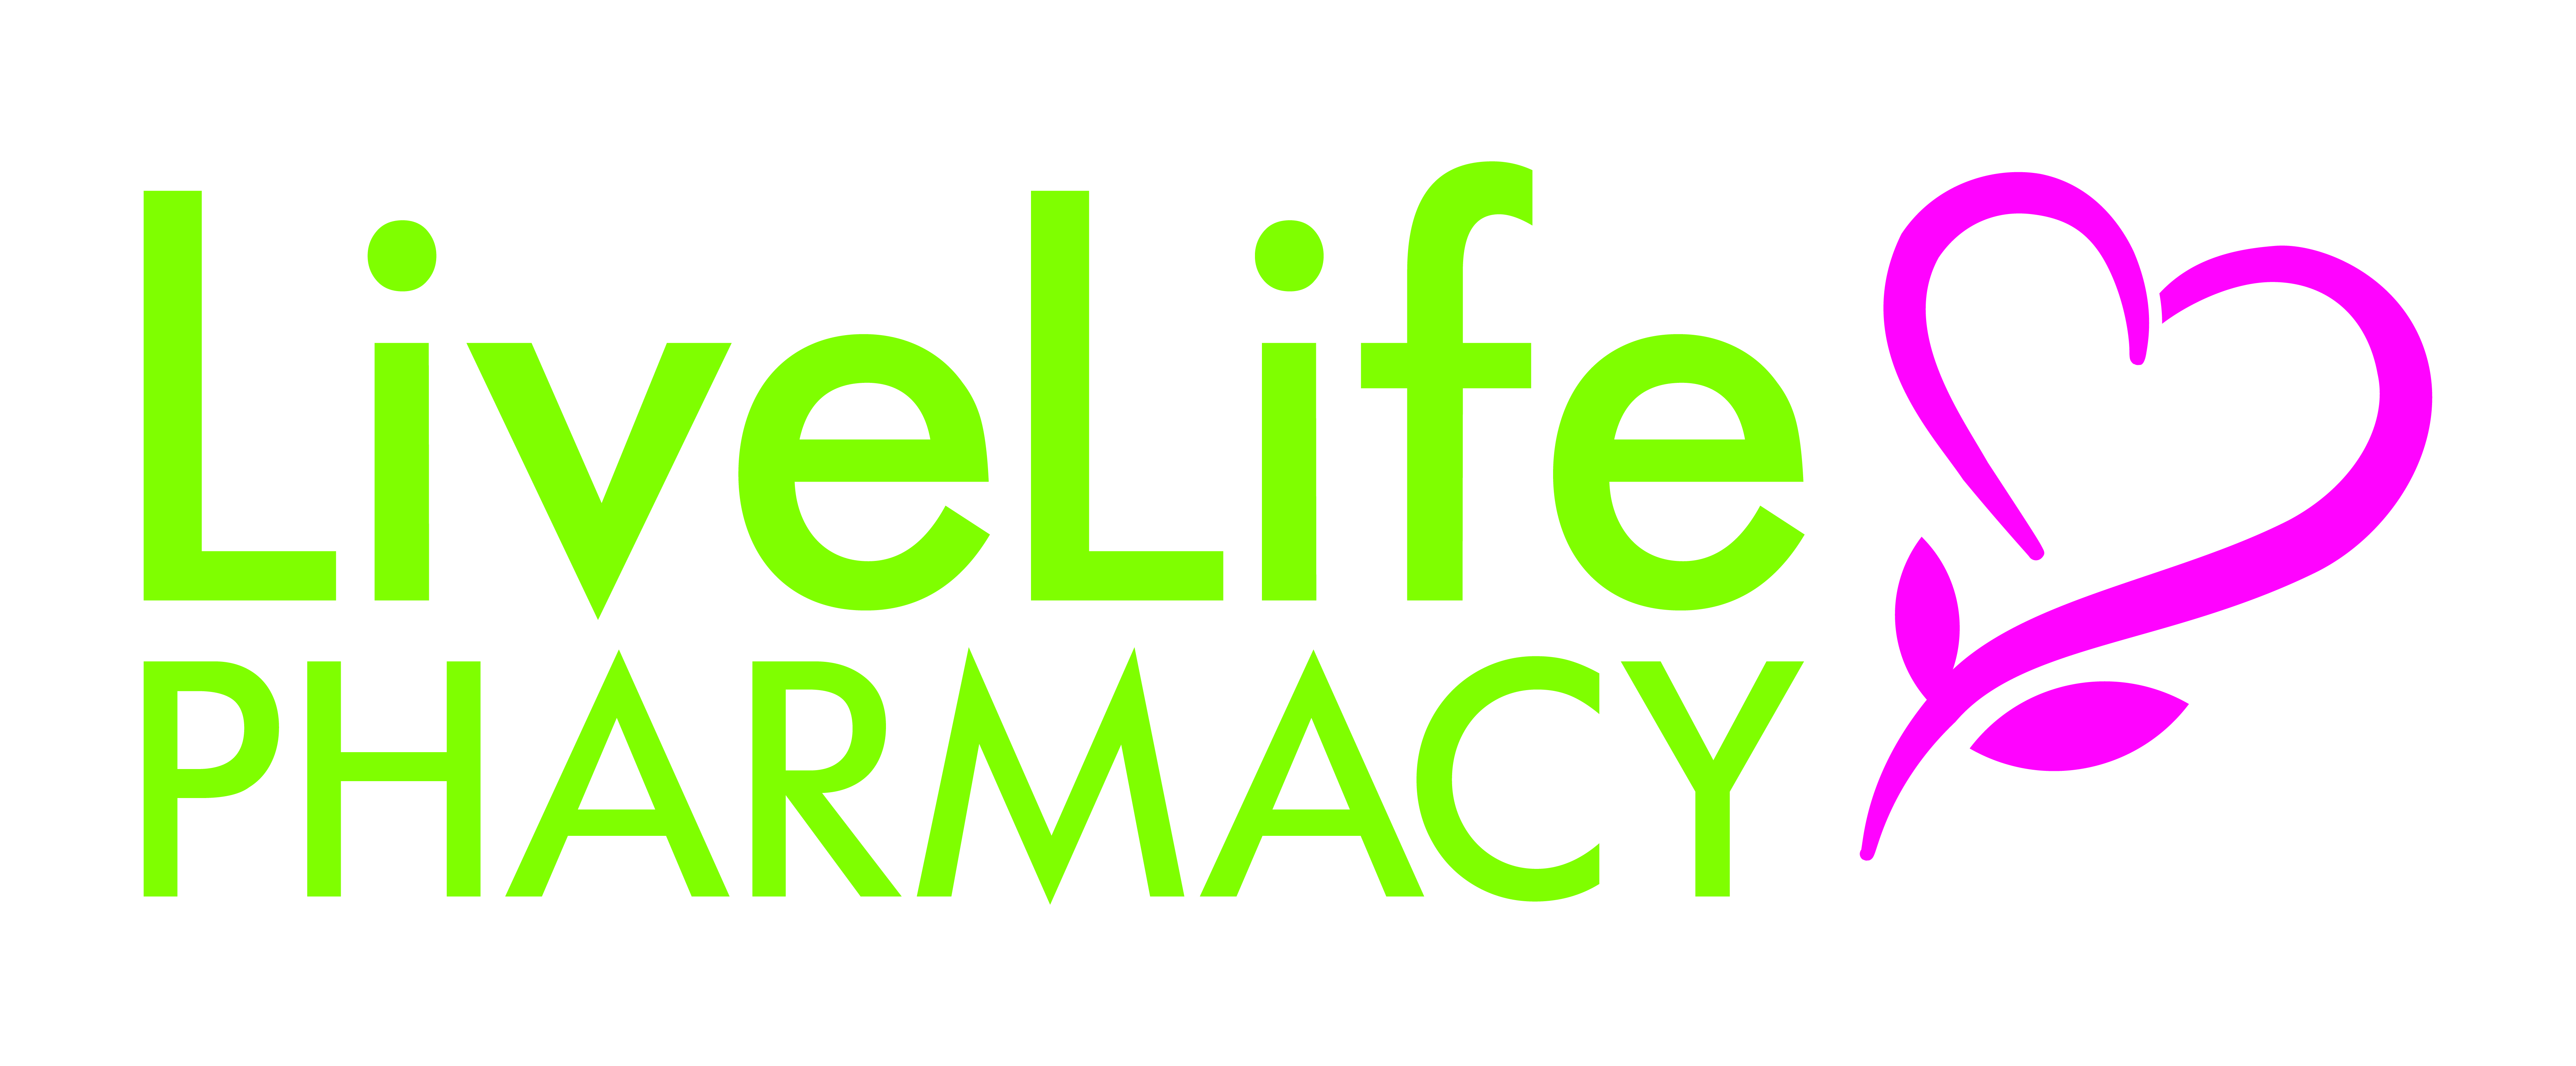 LiveLife Pharmacy Mission Beach - Chemists (Distribution And